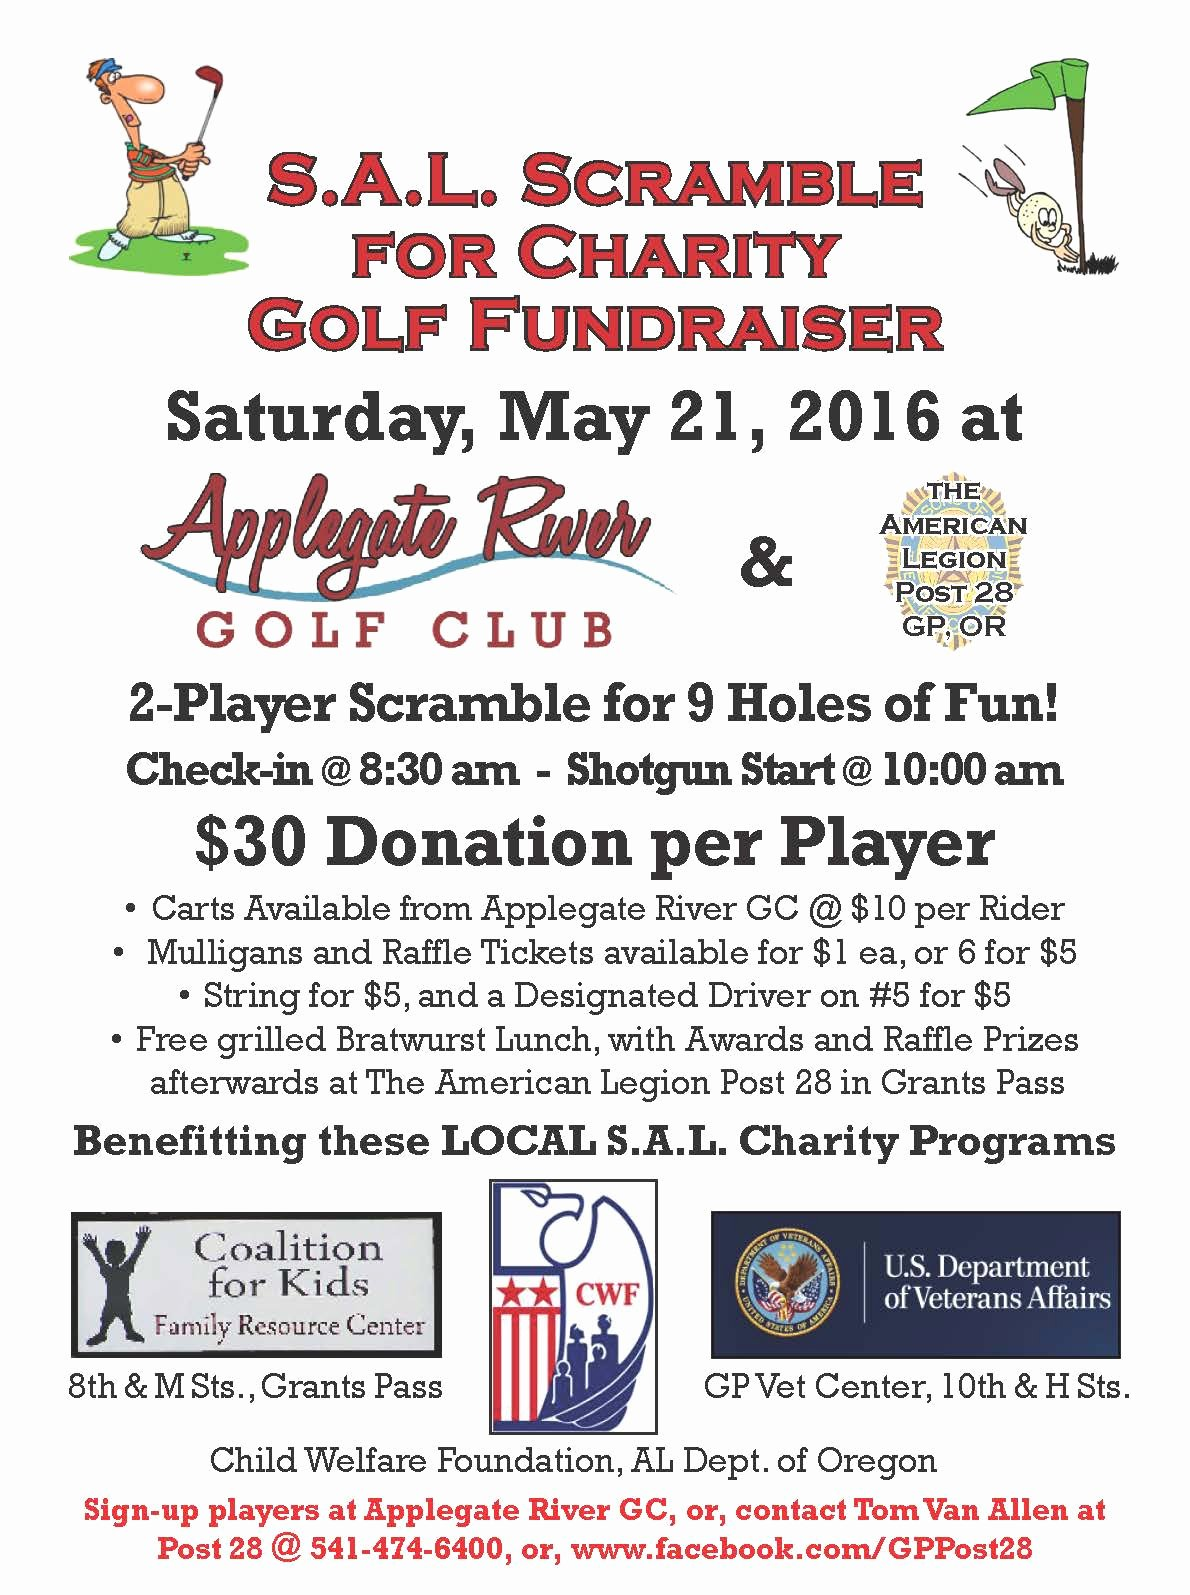 Sons Of American Legion Scramble for Charity Applegate